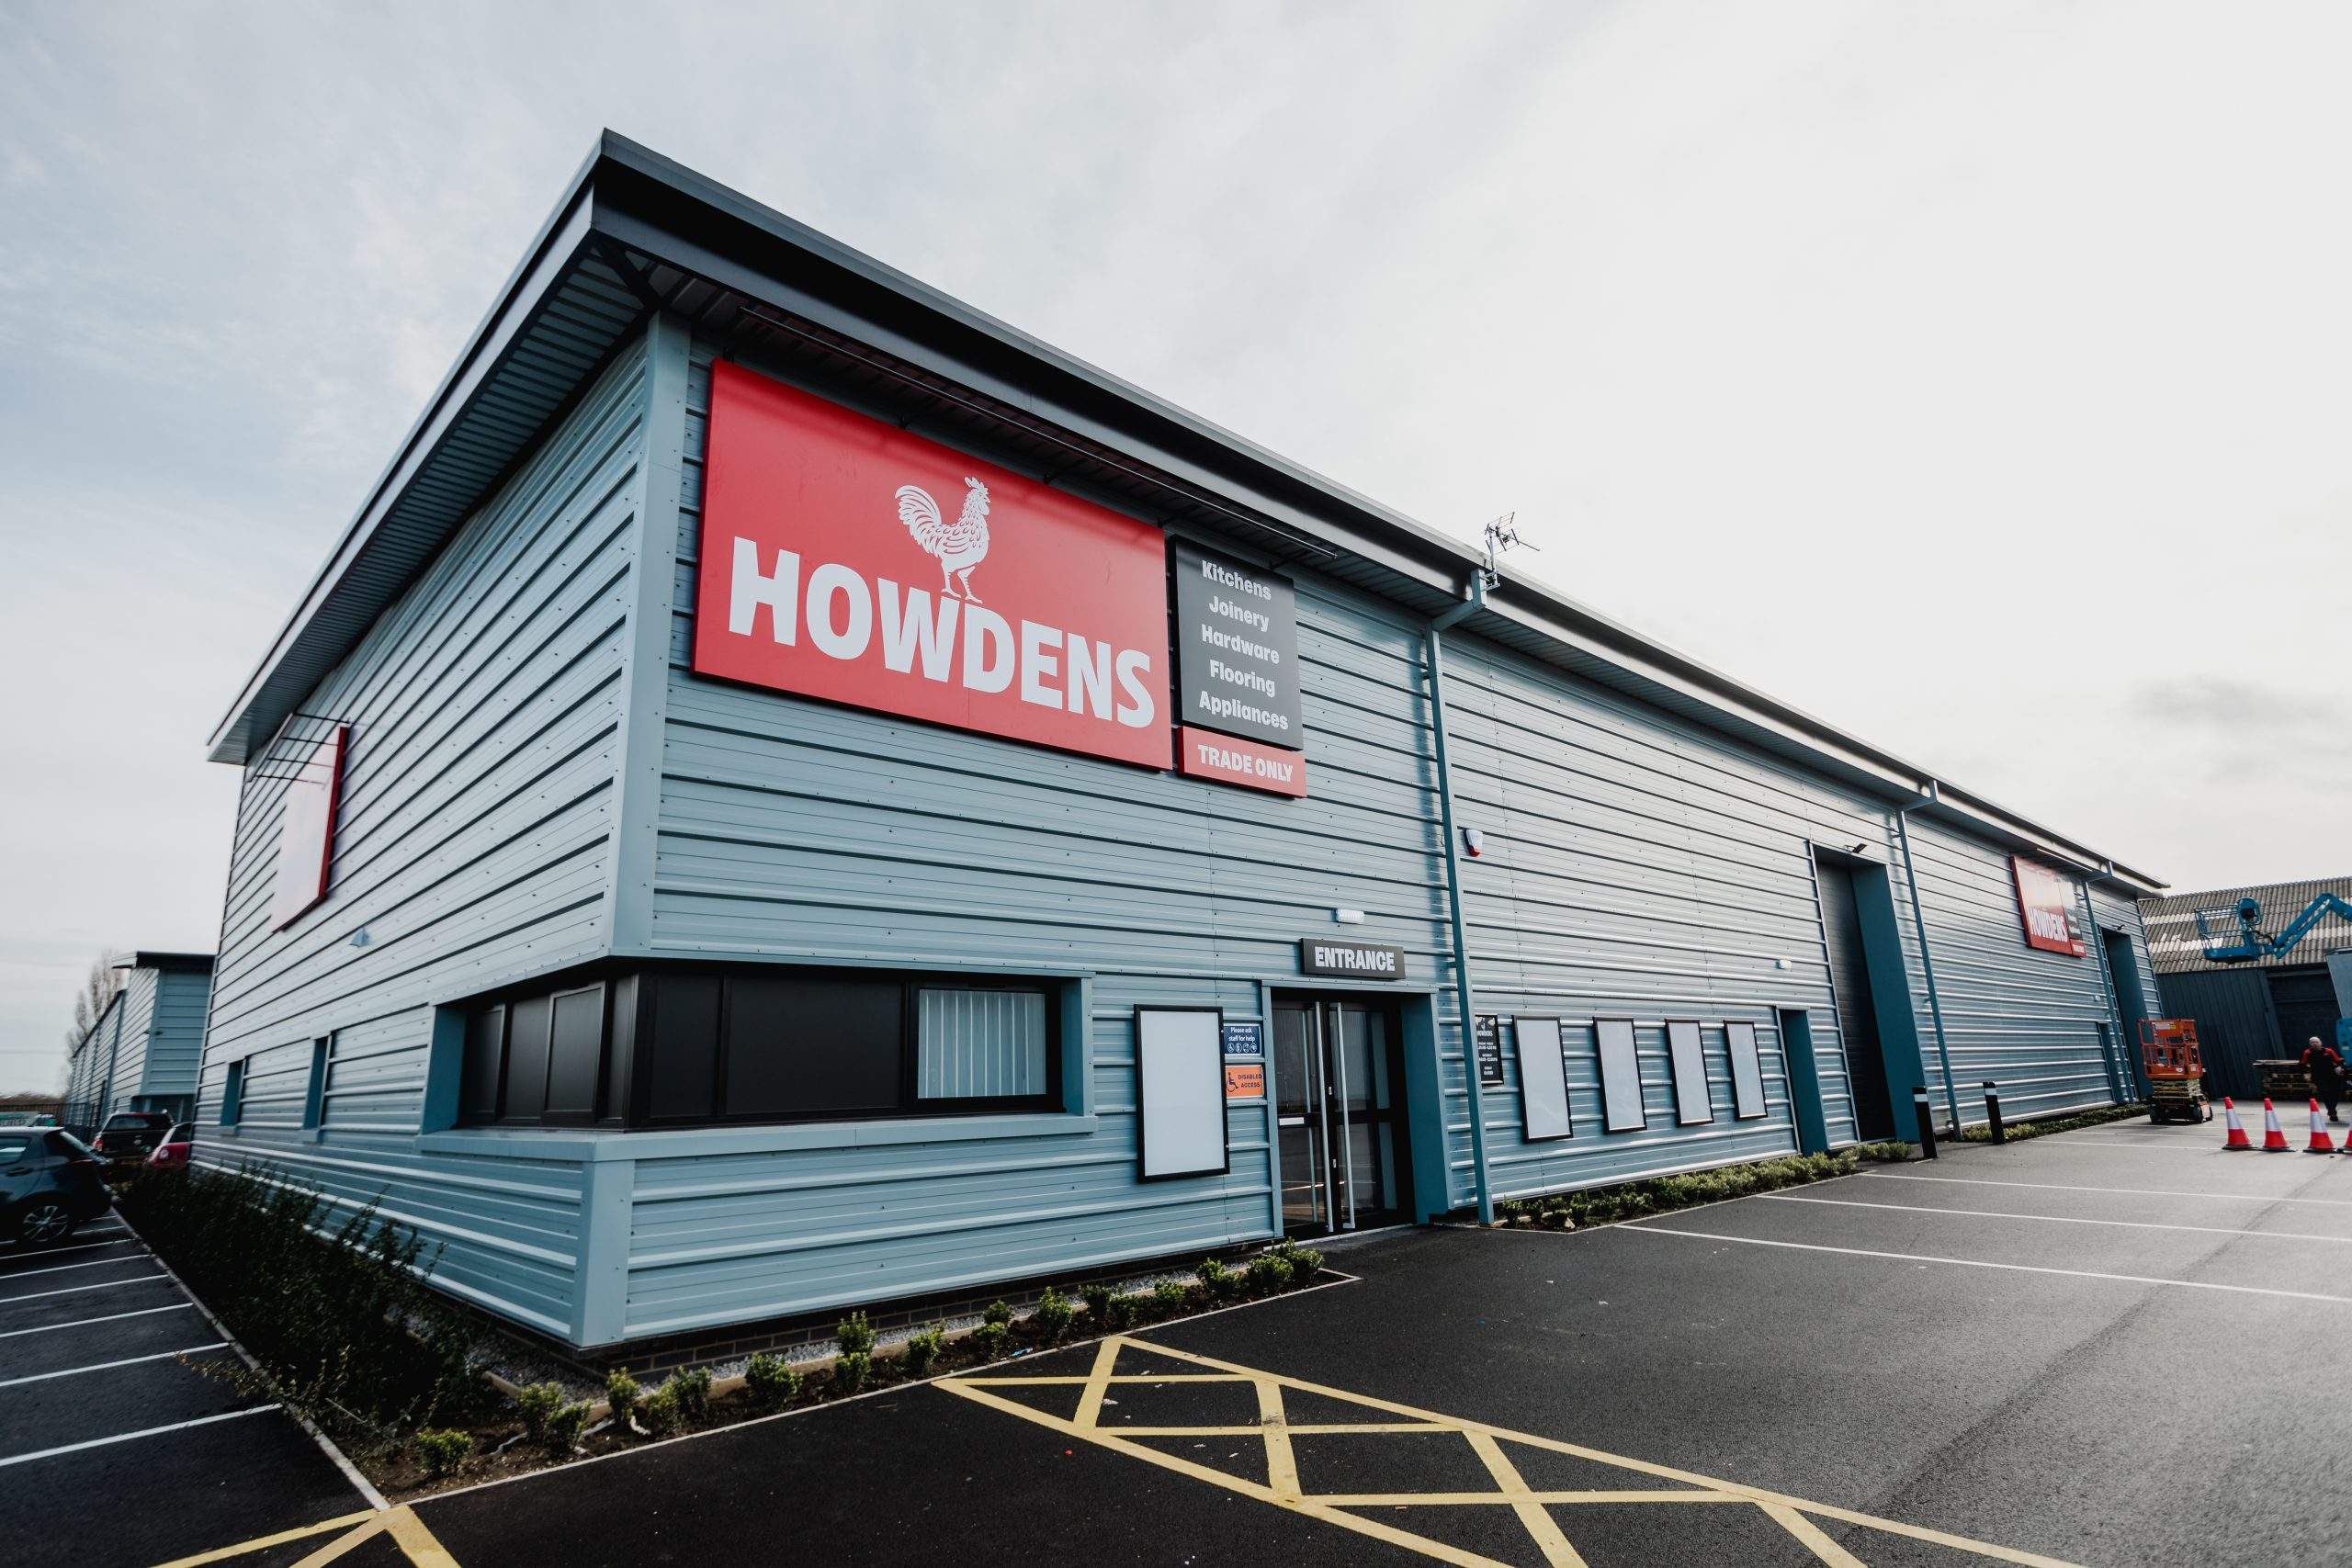 Welcome Howdens